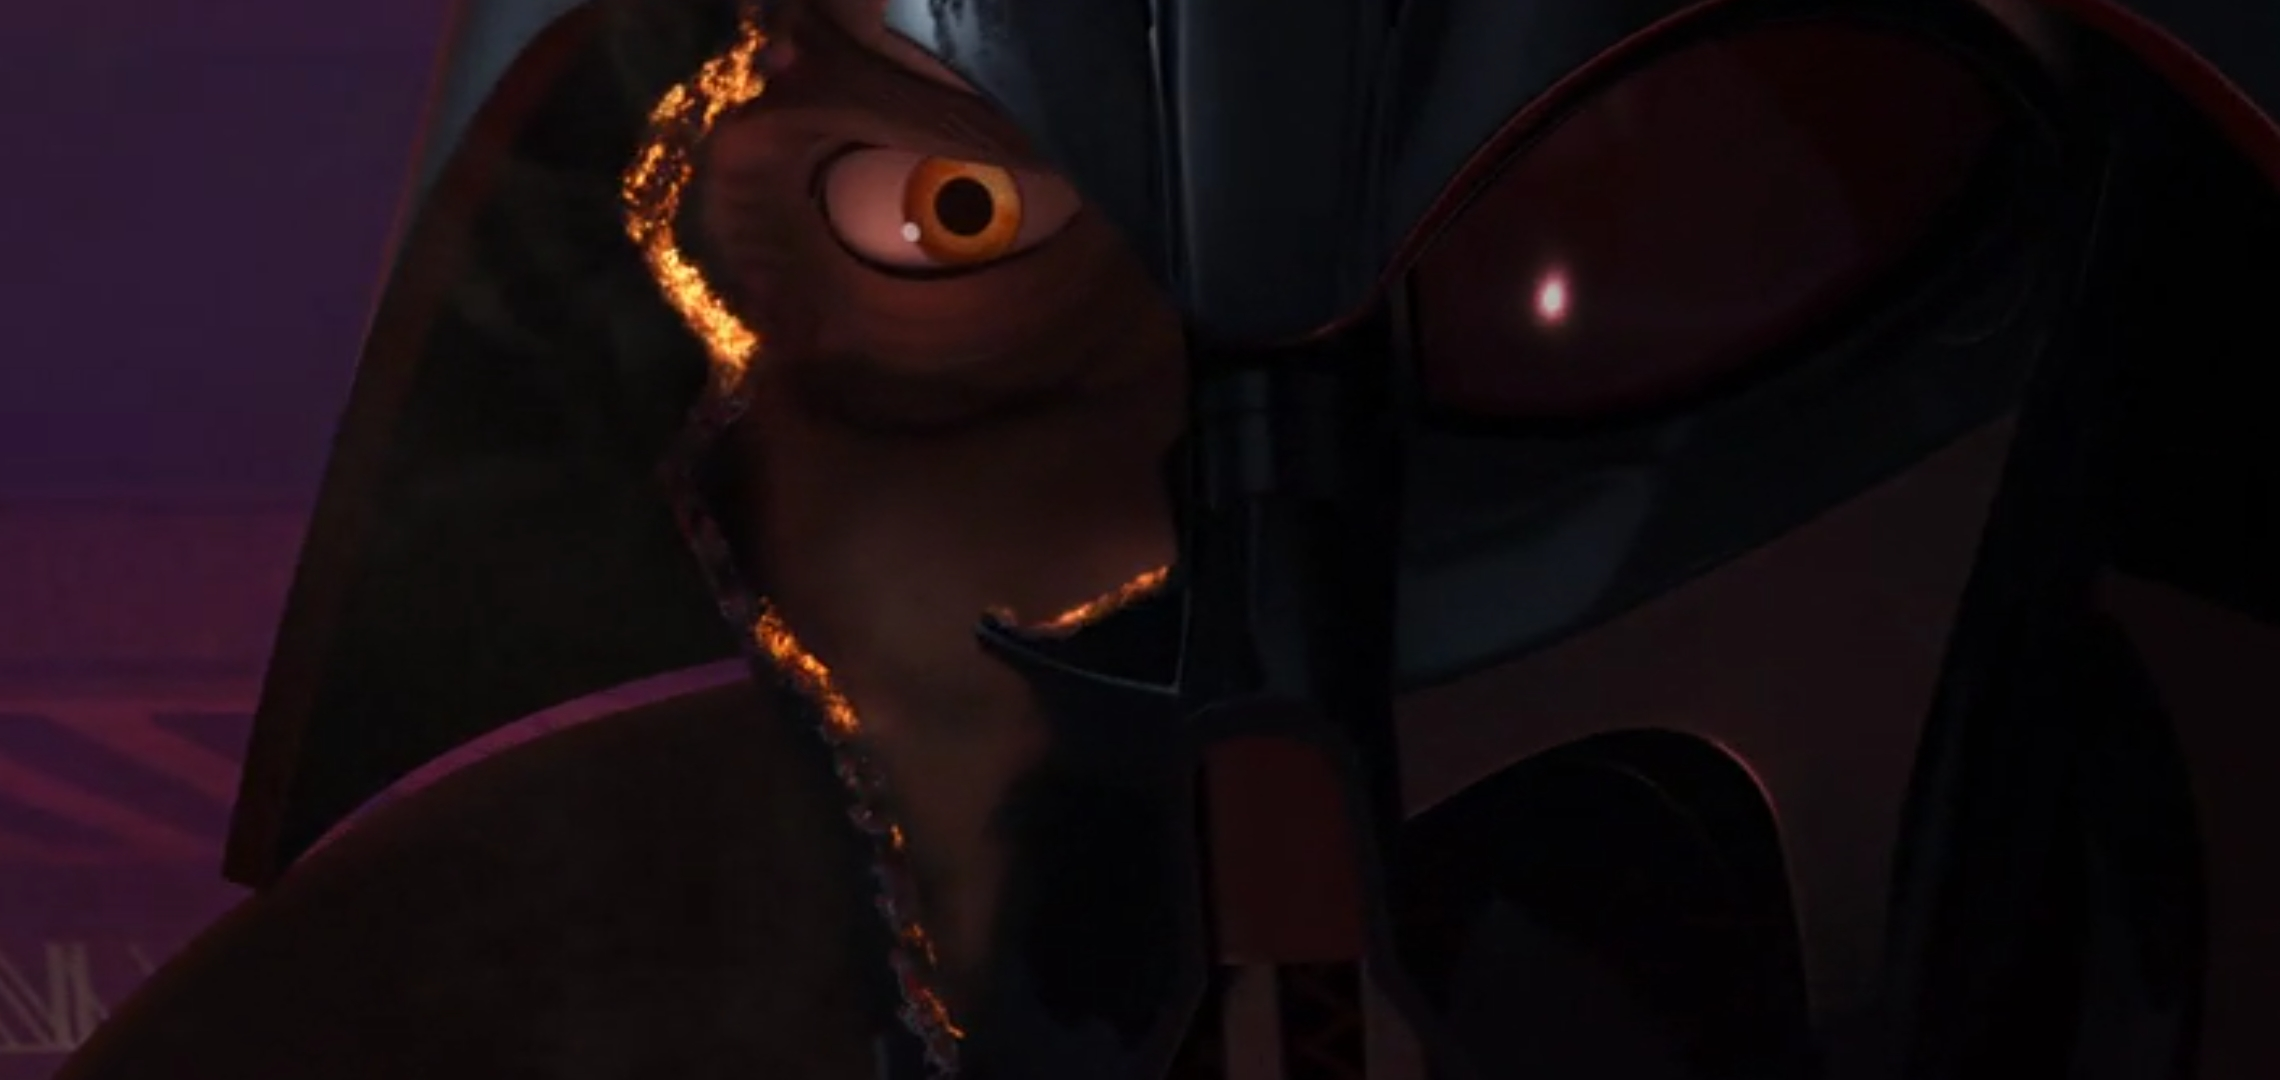 One of *the* best moments in Rebels. Definitely top 5 for the entire Skywalker saga.